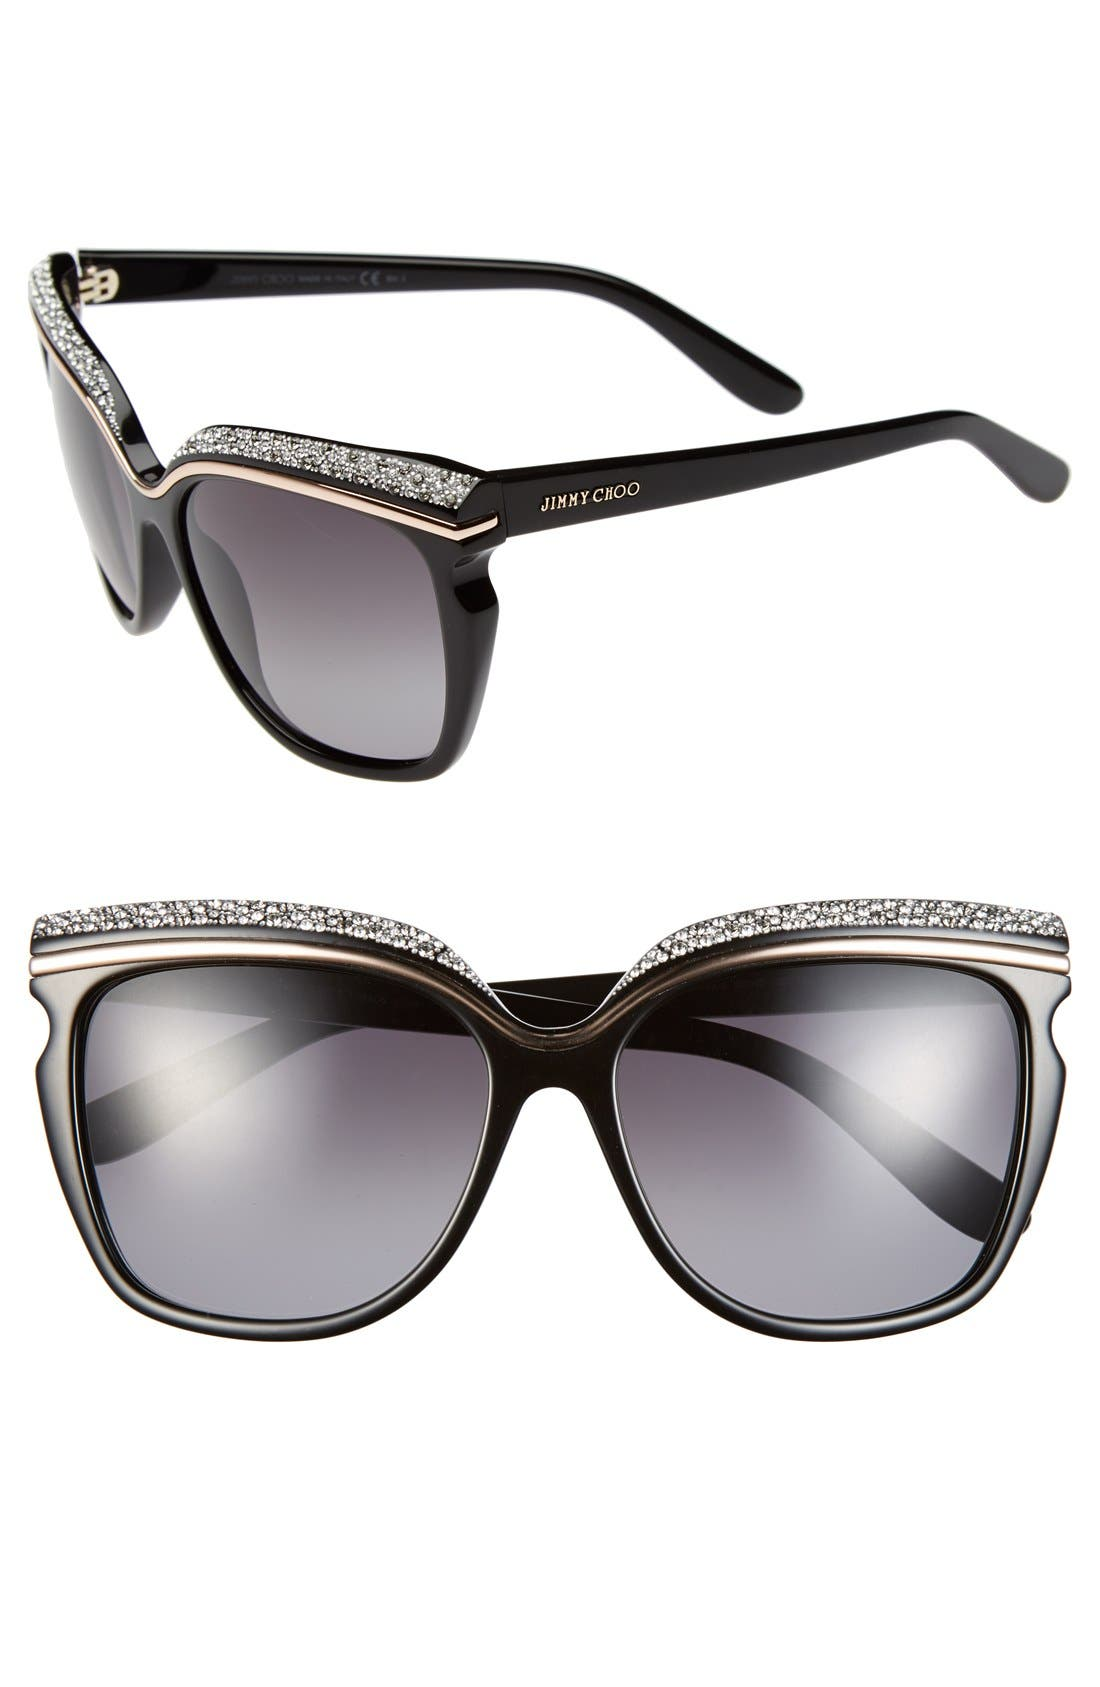 Main Image - Jimmy Choo 58mm Retro Sunglasses